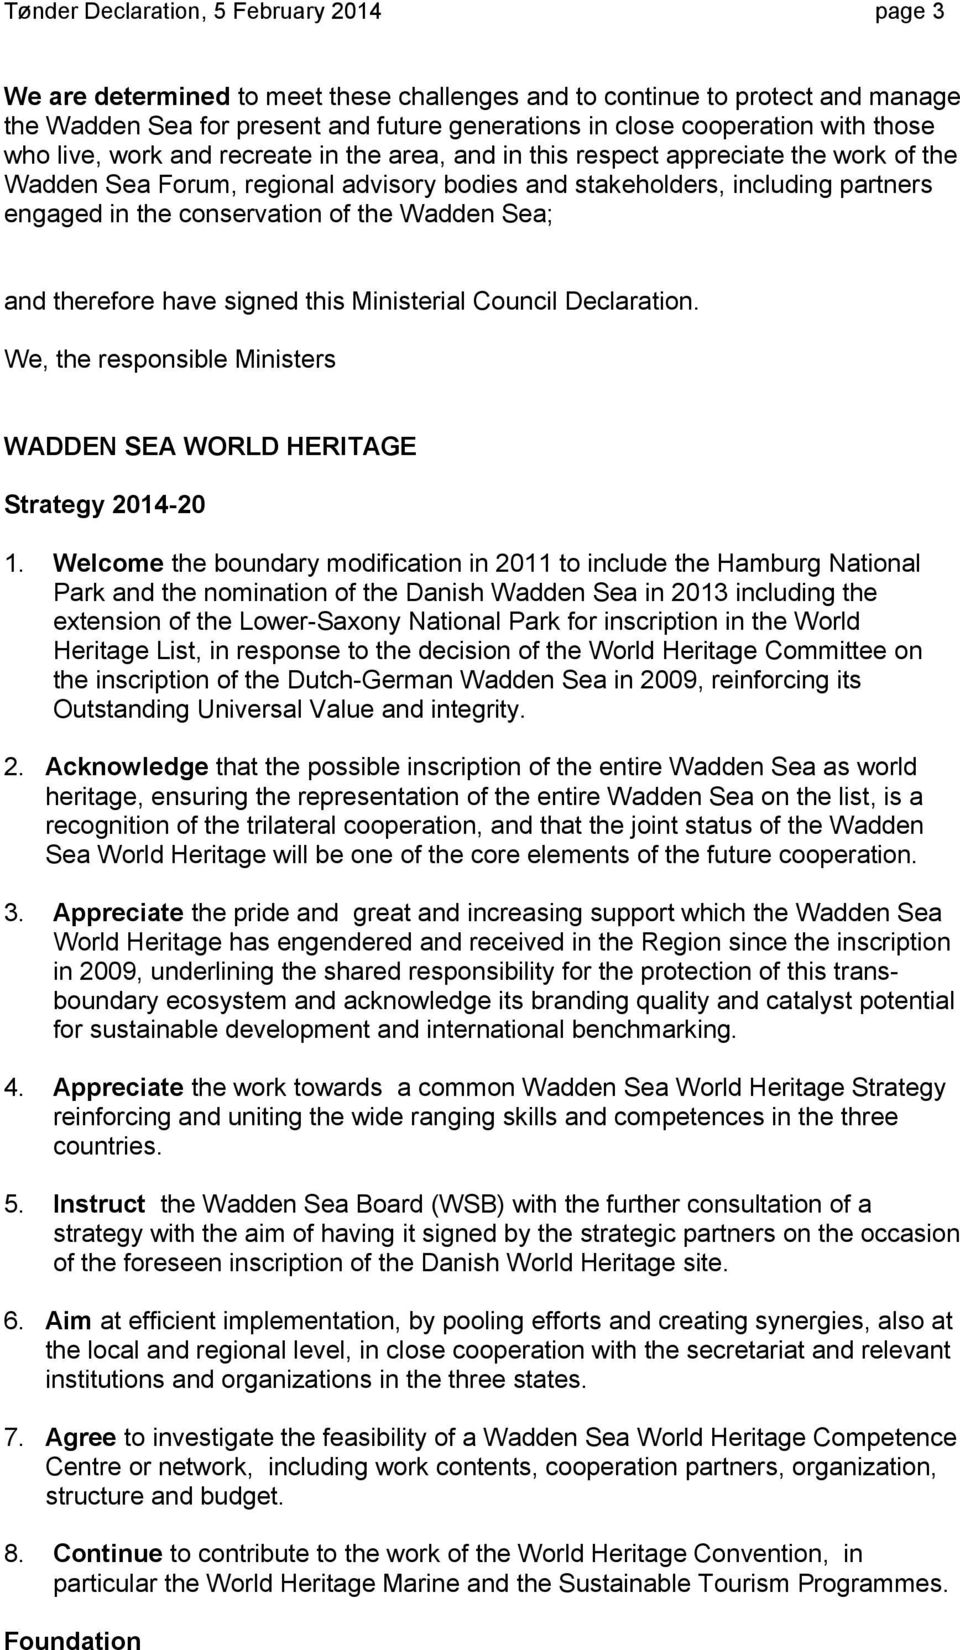 conservation of the Wadden Sea; and therefore have signed this Ministerial Council Declaration. We, the responsible Ministers WADDEN SEA WORLD HERITAGE Strategy 2014-20 1.